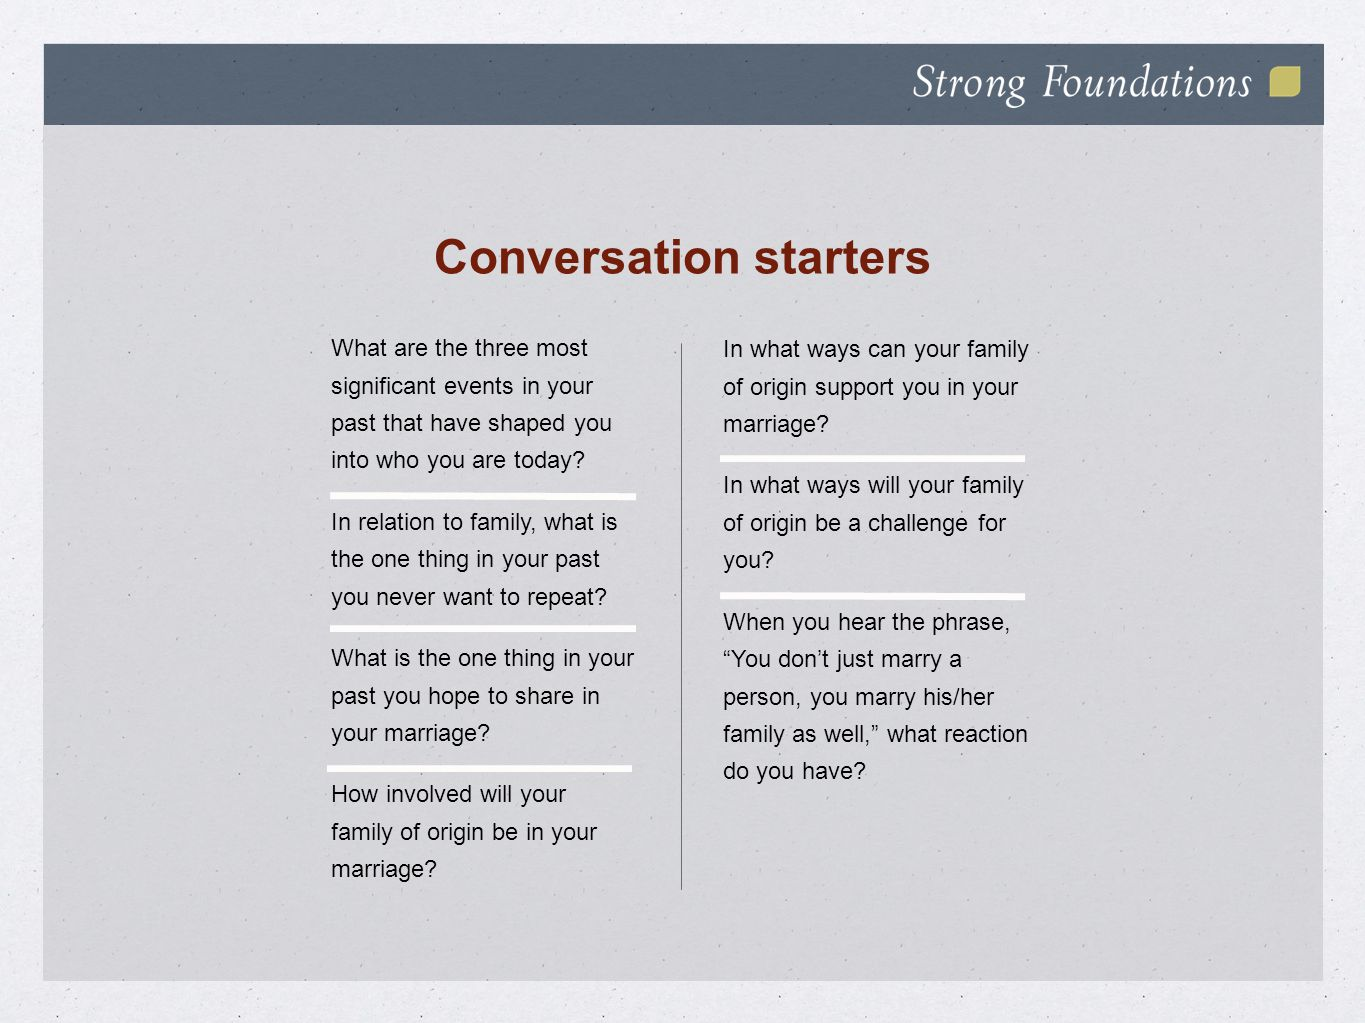 Conversation starters What are the three most significant events in your past that have shaped you into who you are today? In relation to family, what